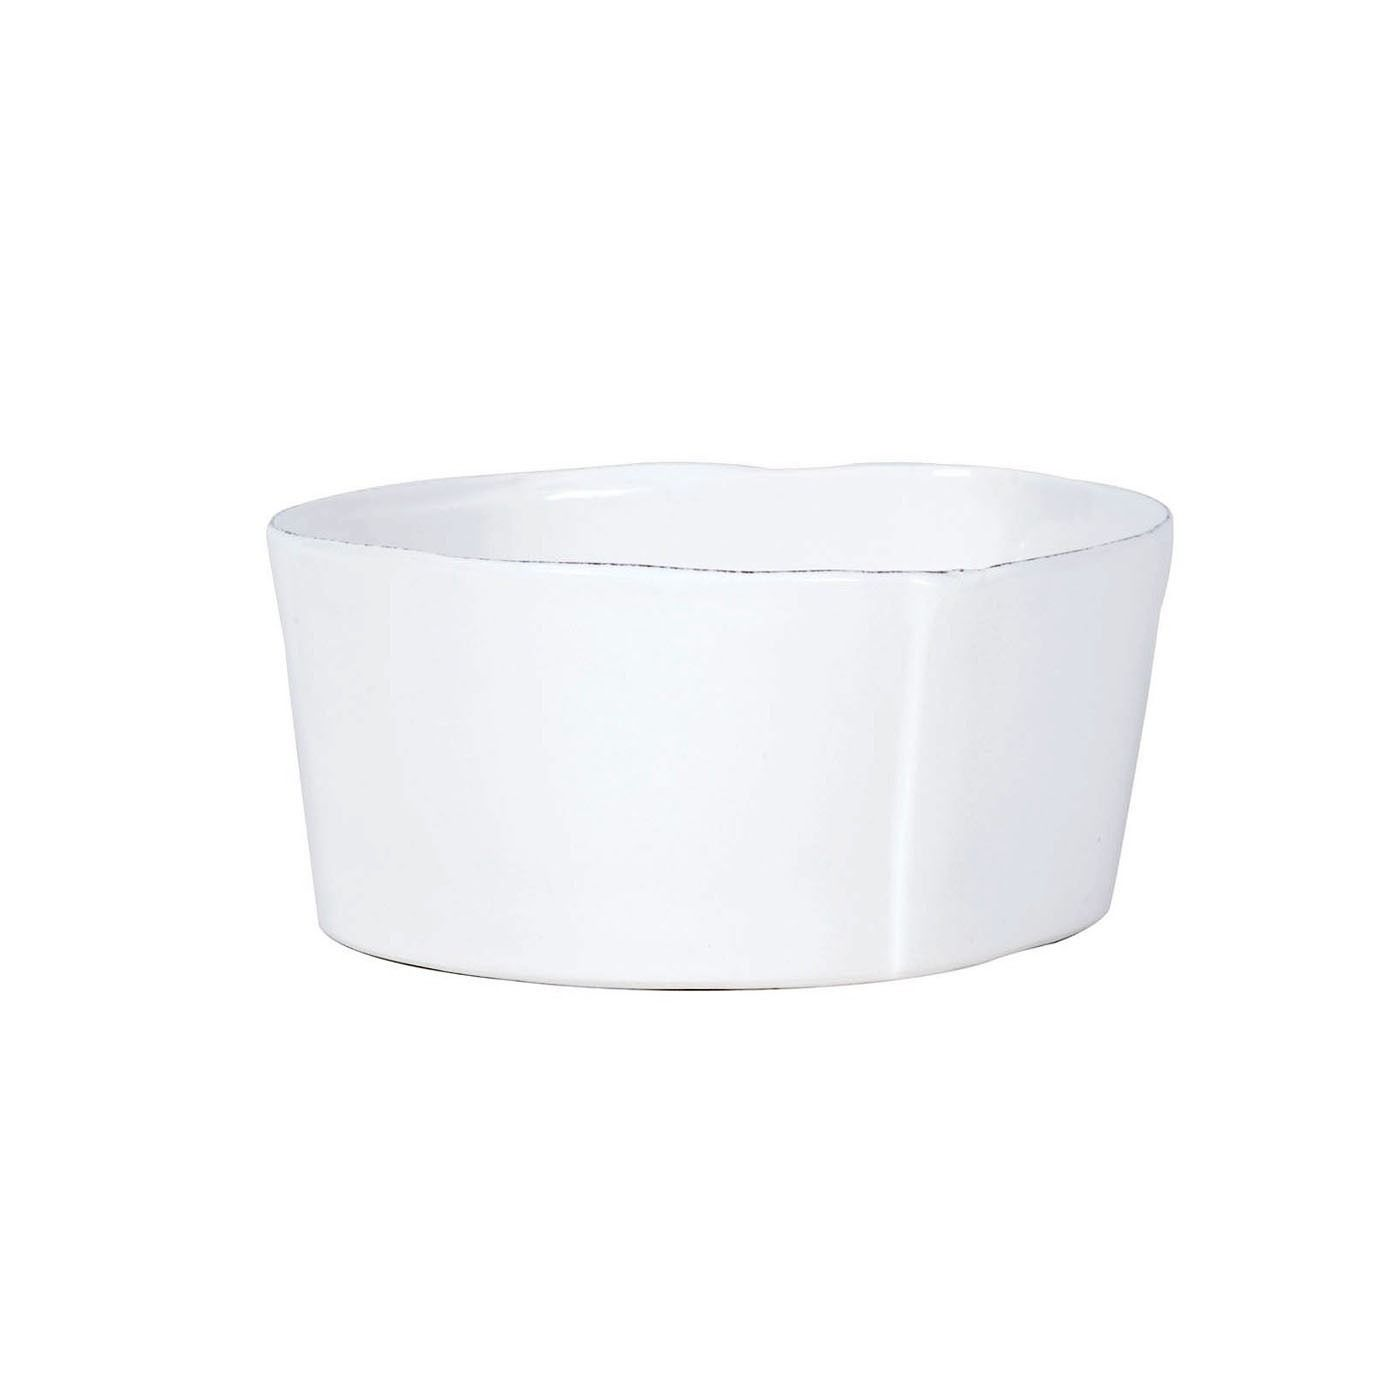 The organic shape of the Lastra White Cereal Bowl is modeled off of the straps that were used to form Parmesan cheese in Italy for centuries.